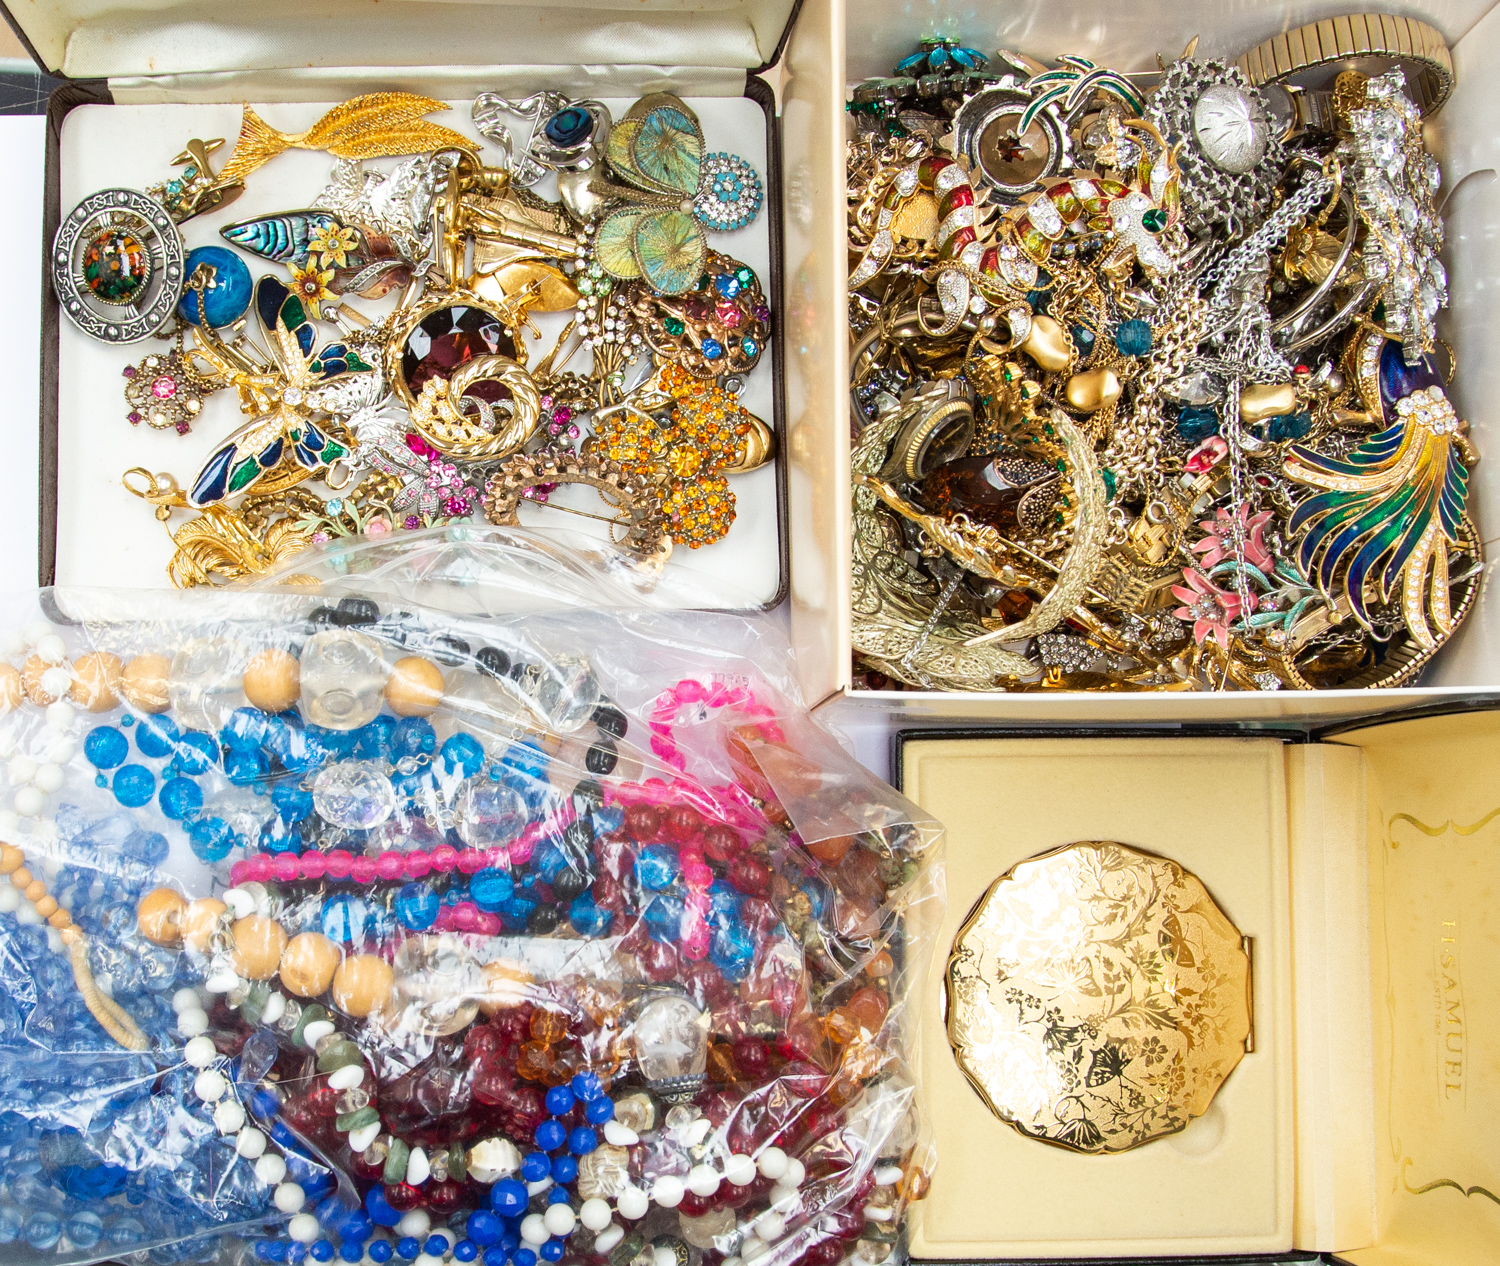 Lot 400 - A large collection of costume jewellery to include vintage paste set brooches, enamel bird brooches,